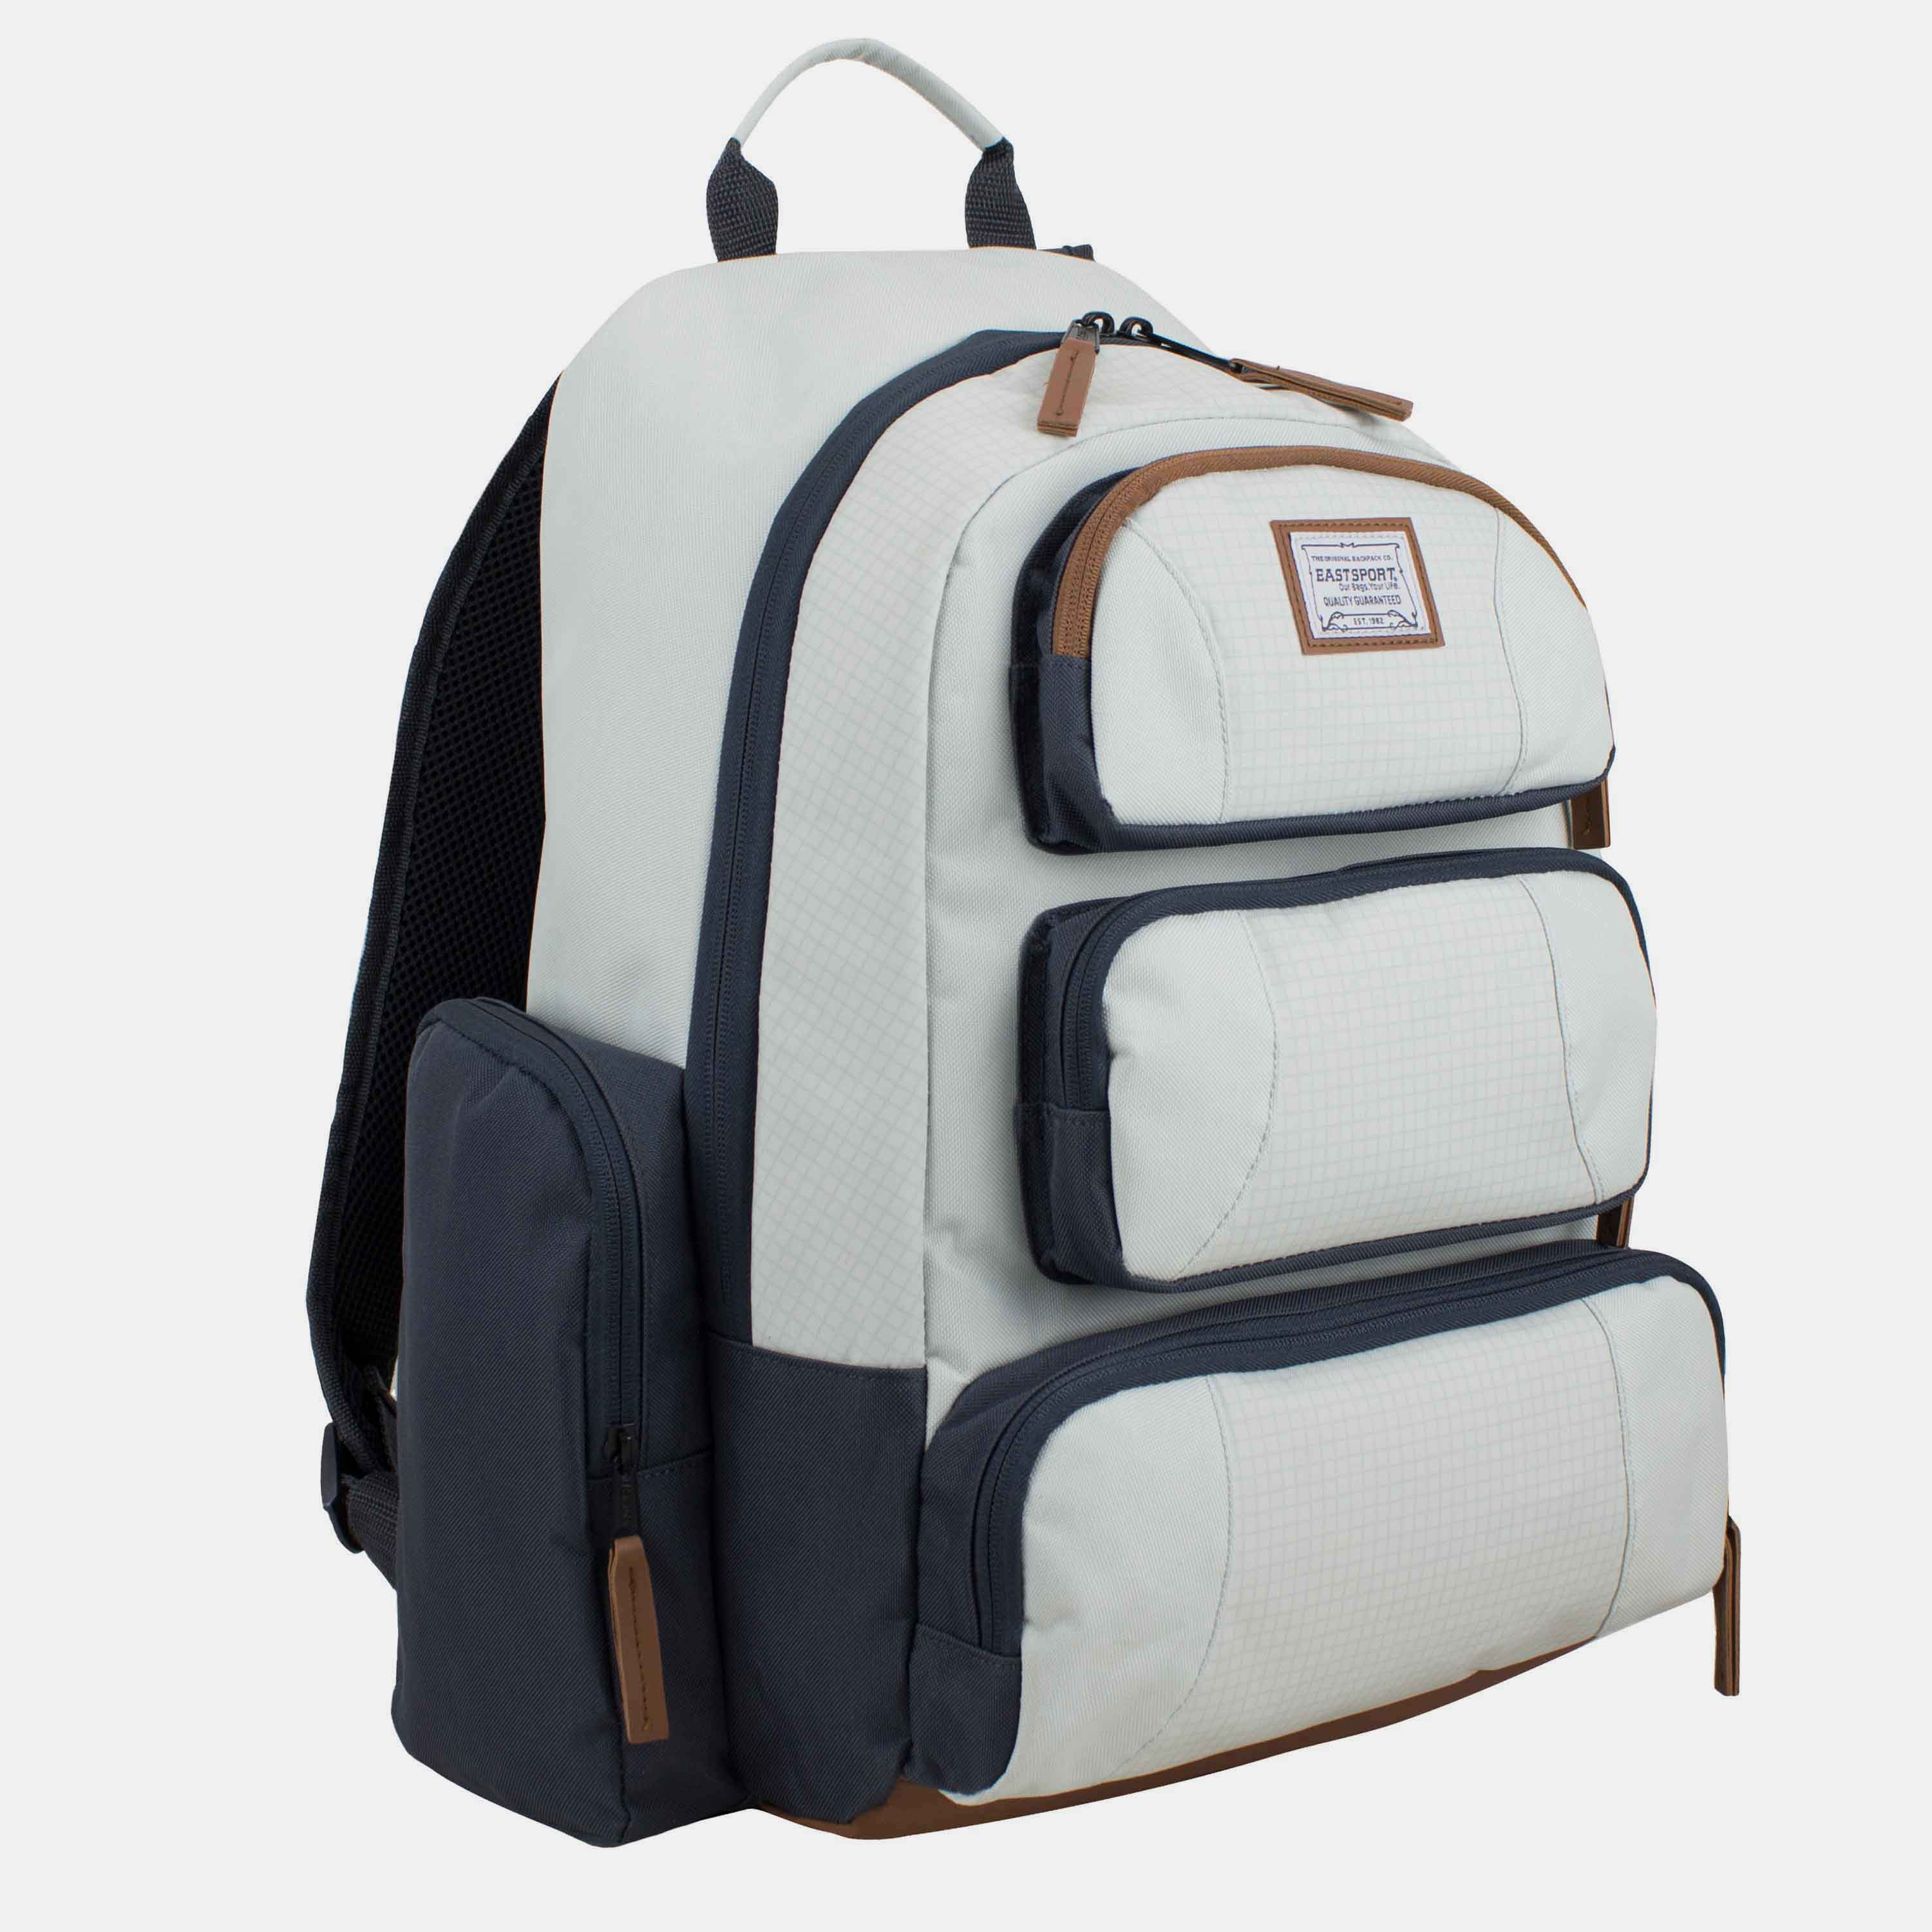 Eastsport Athleisure Backpack